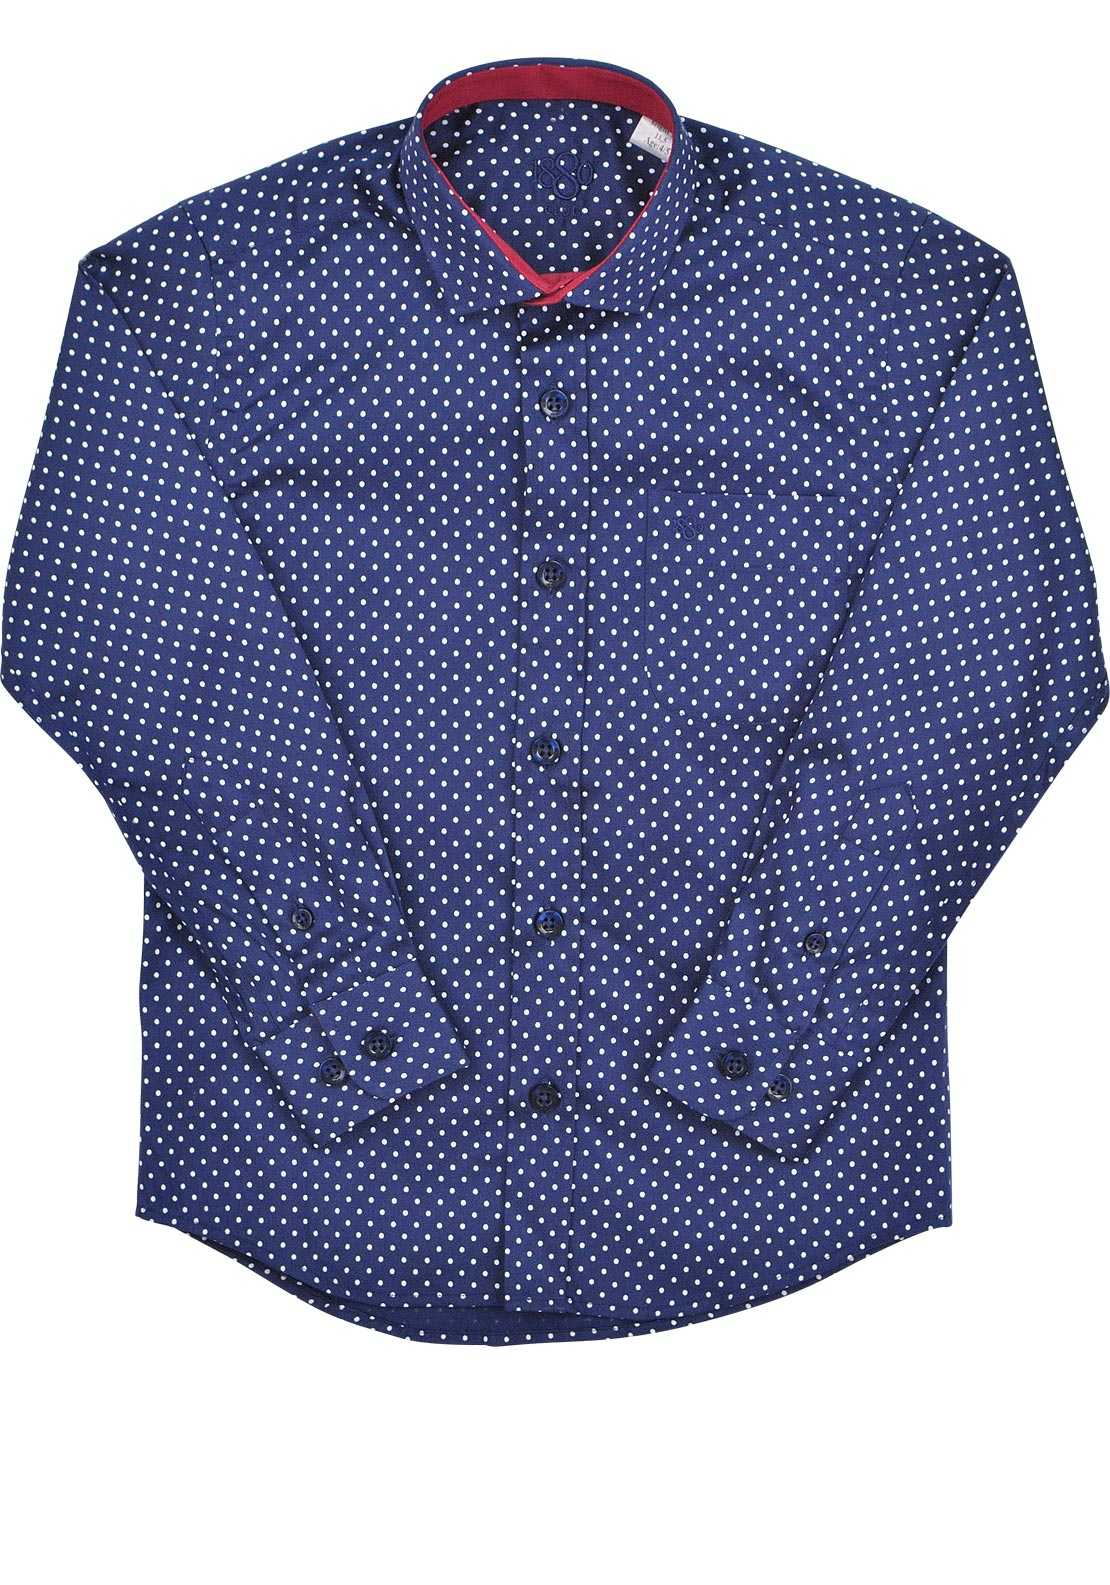 1880 Club Boys Polka Dot Shirt, Navy